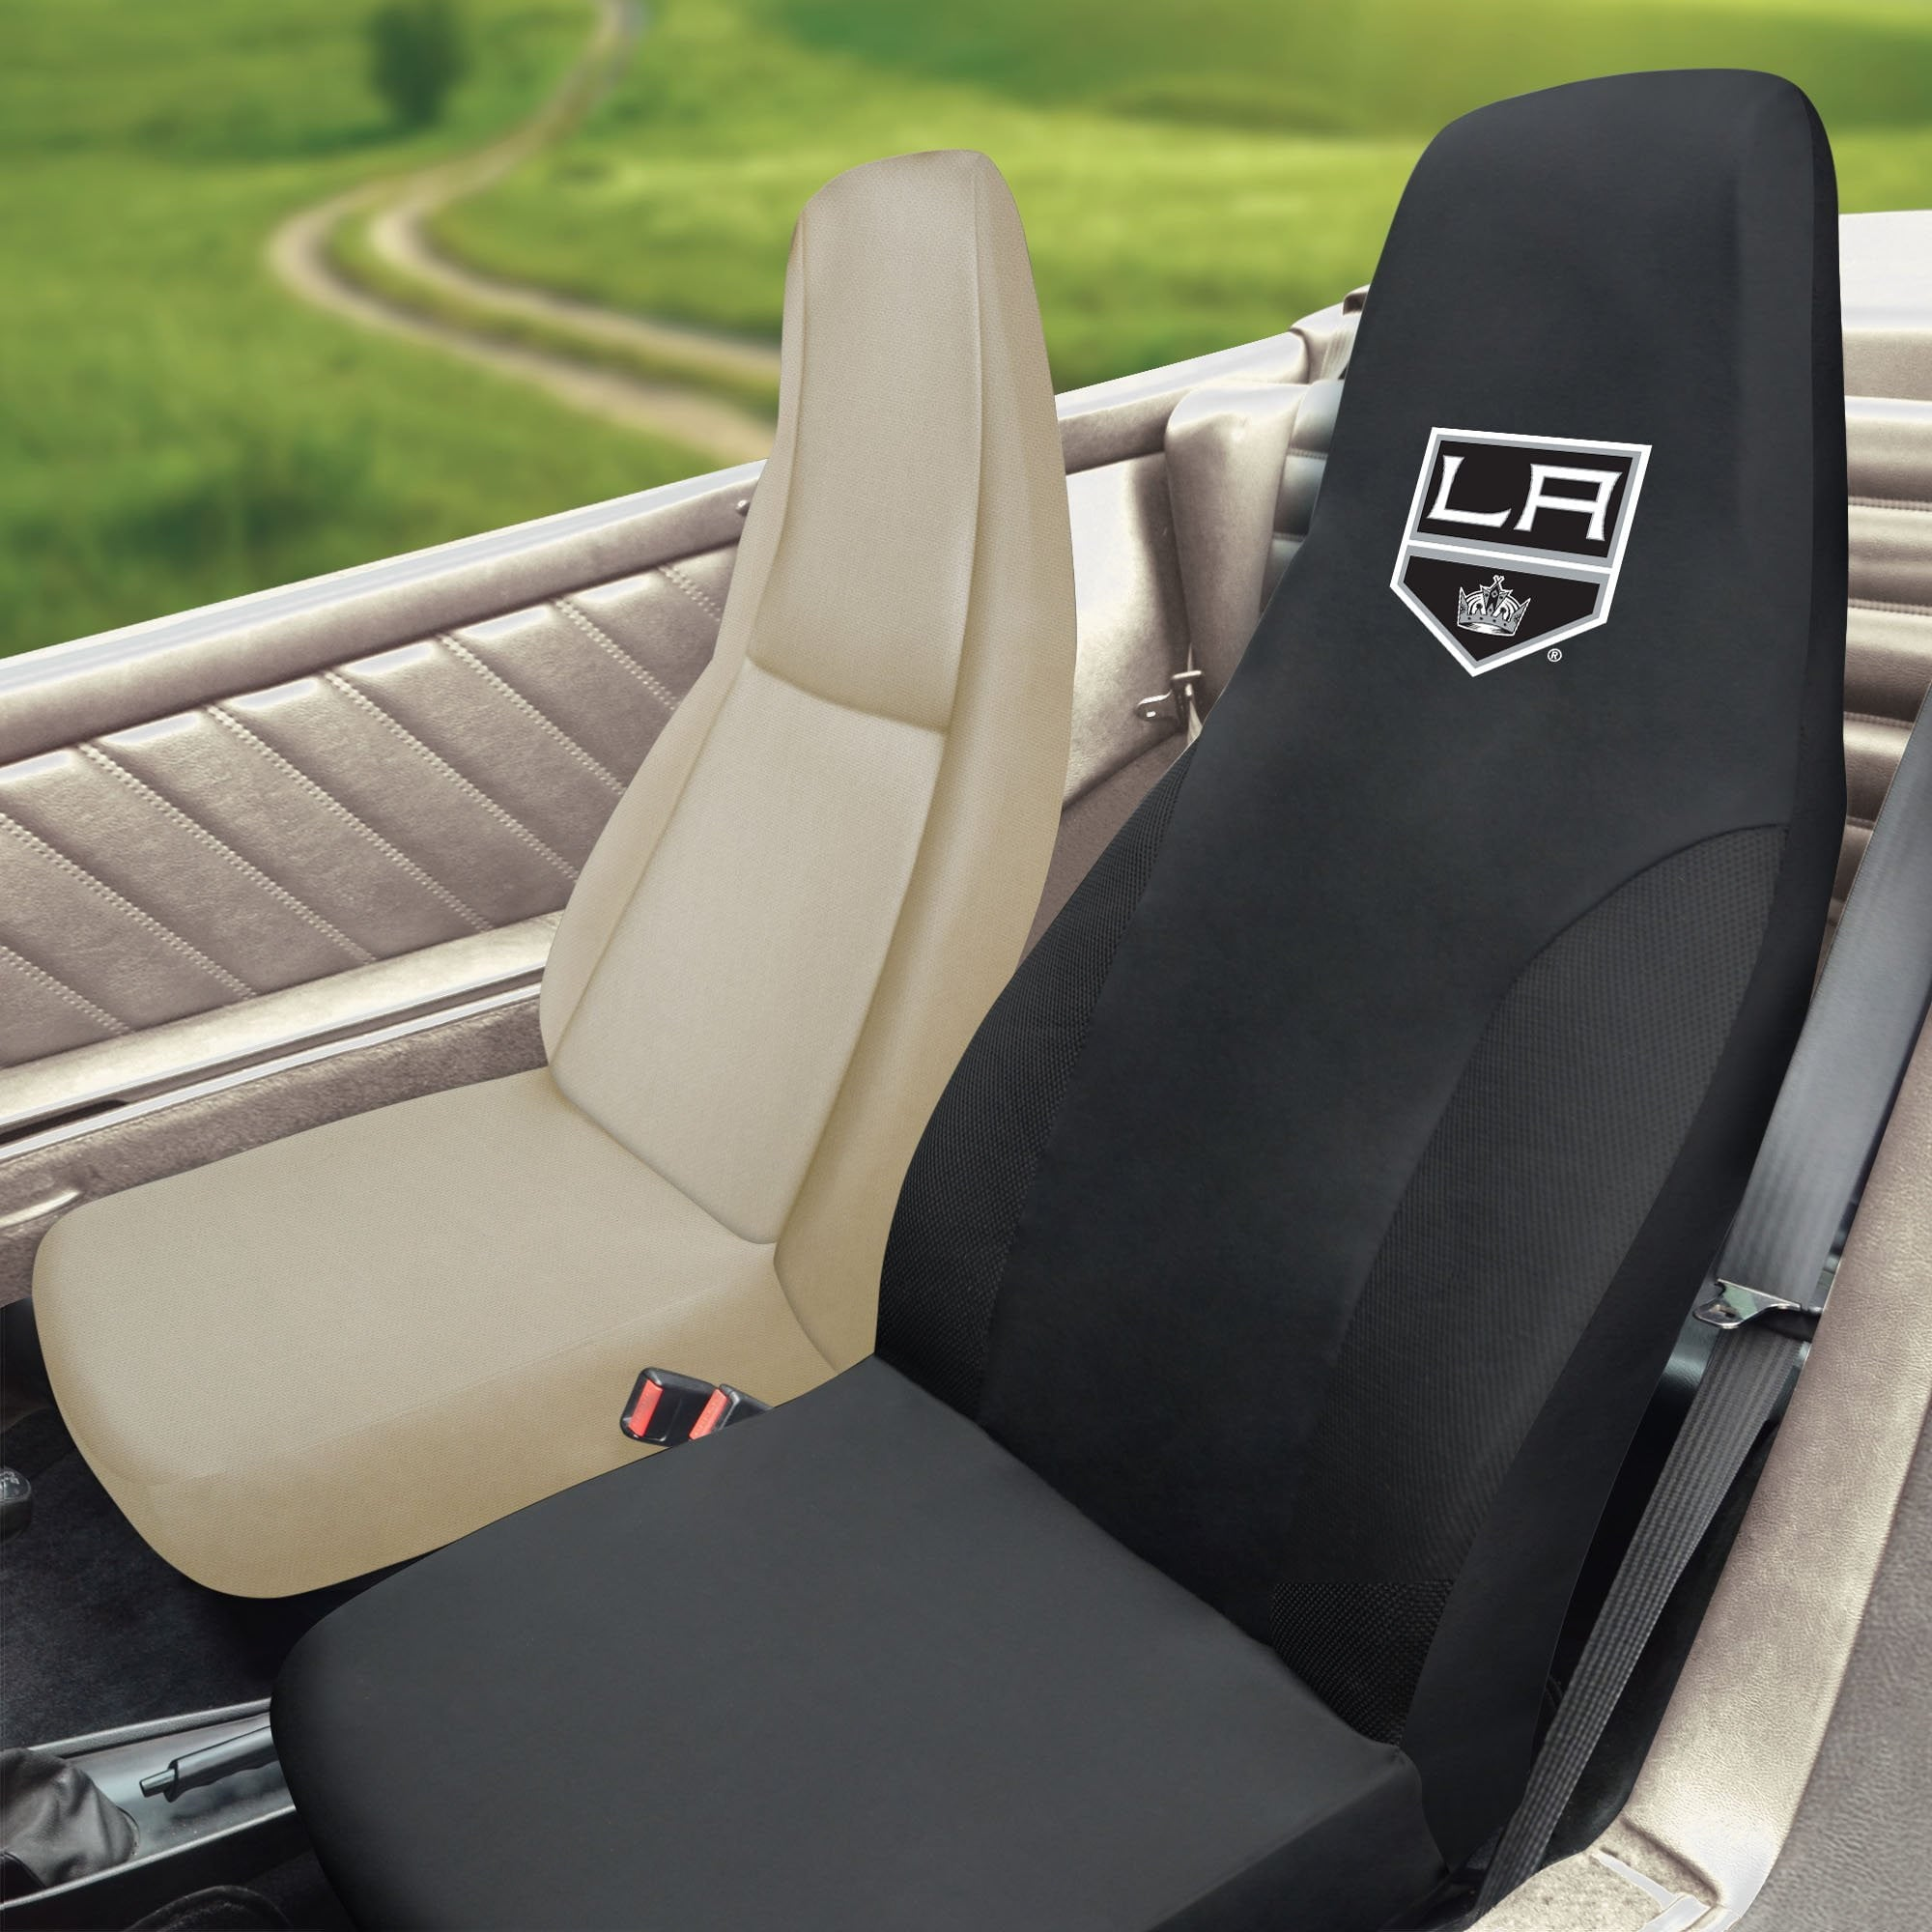 NHL - Los Angeles Kings Set of 2 Car Seat Covers